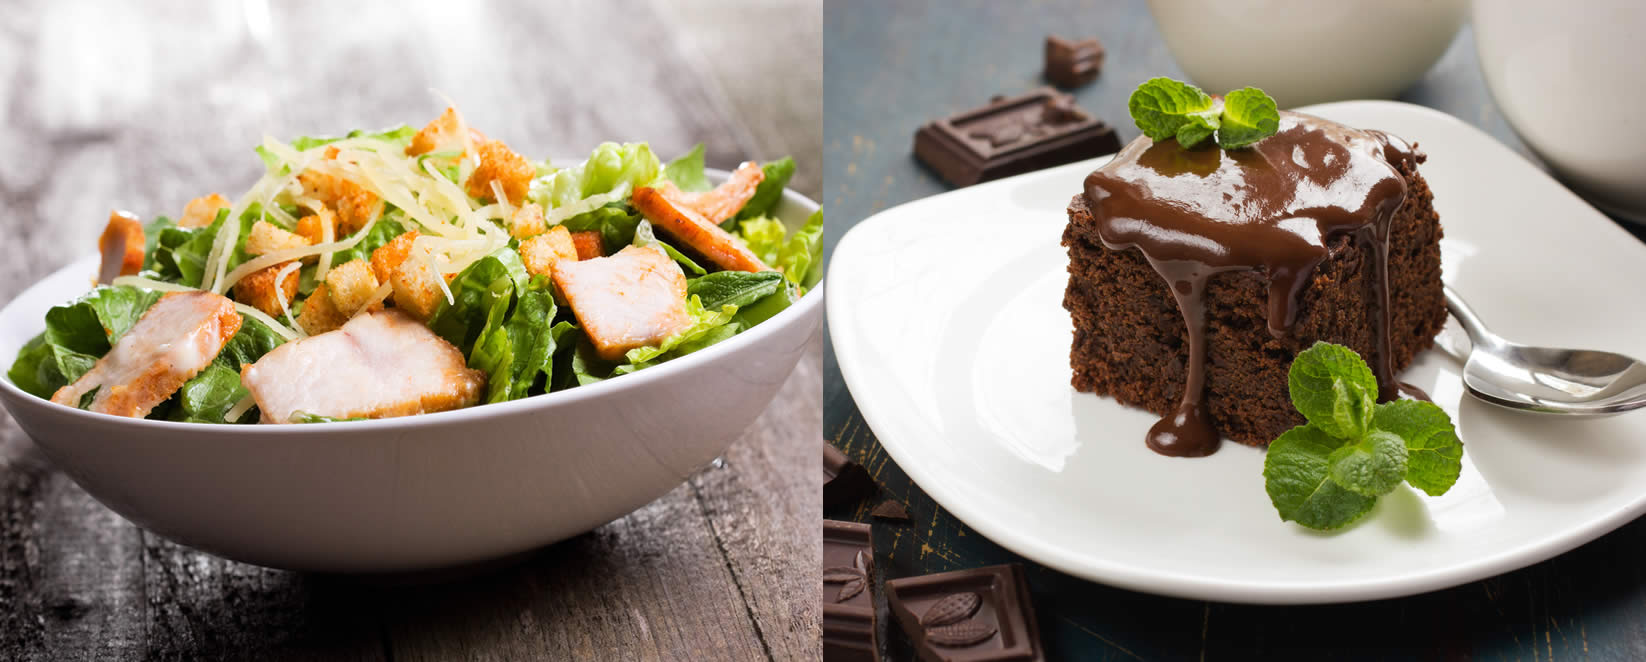 chicken caesar salad & homemade chocolate brownie